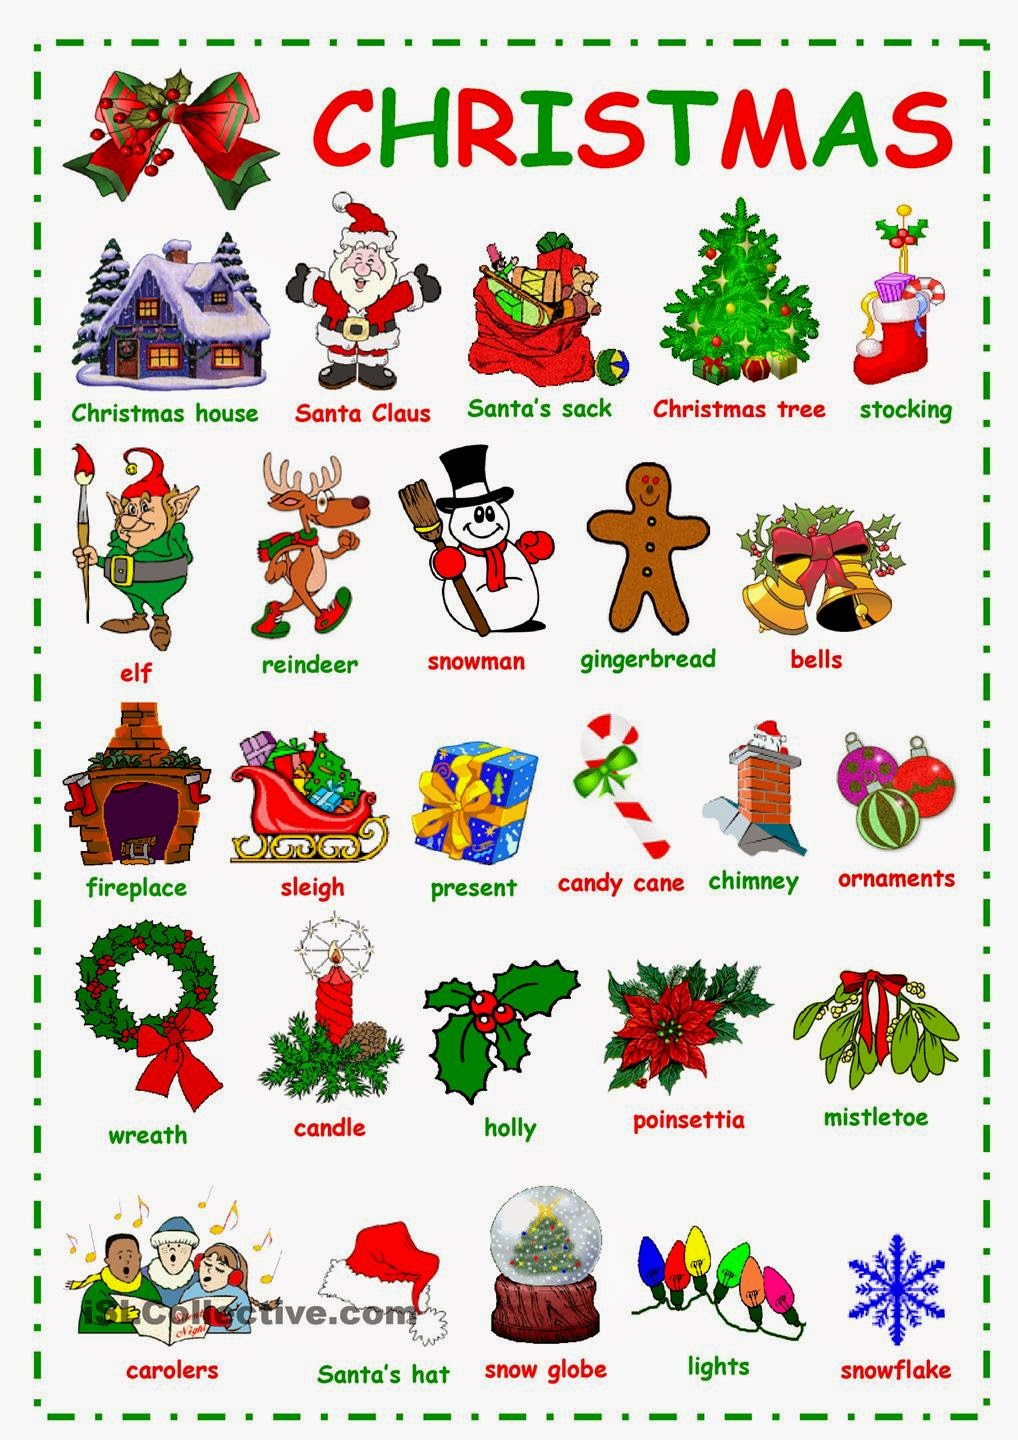 christmas words - Christmas Words That Start With S